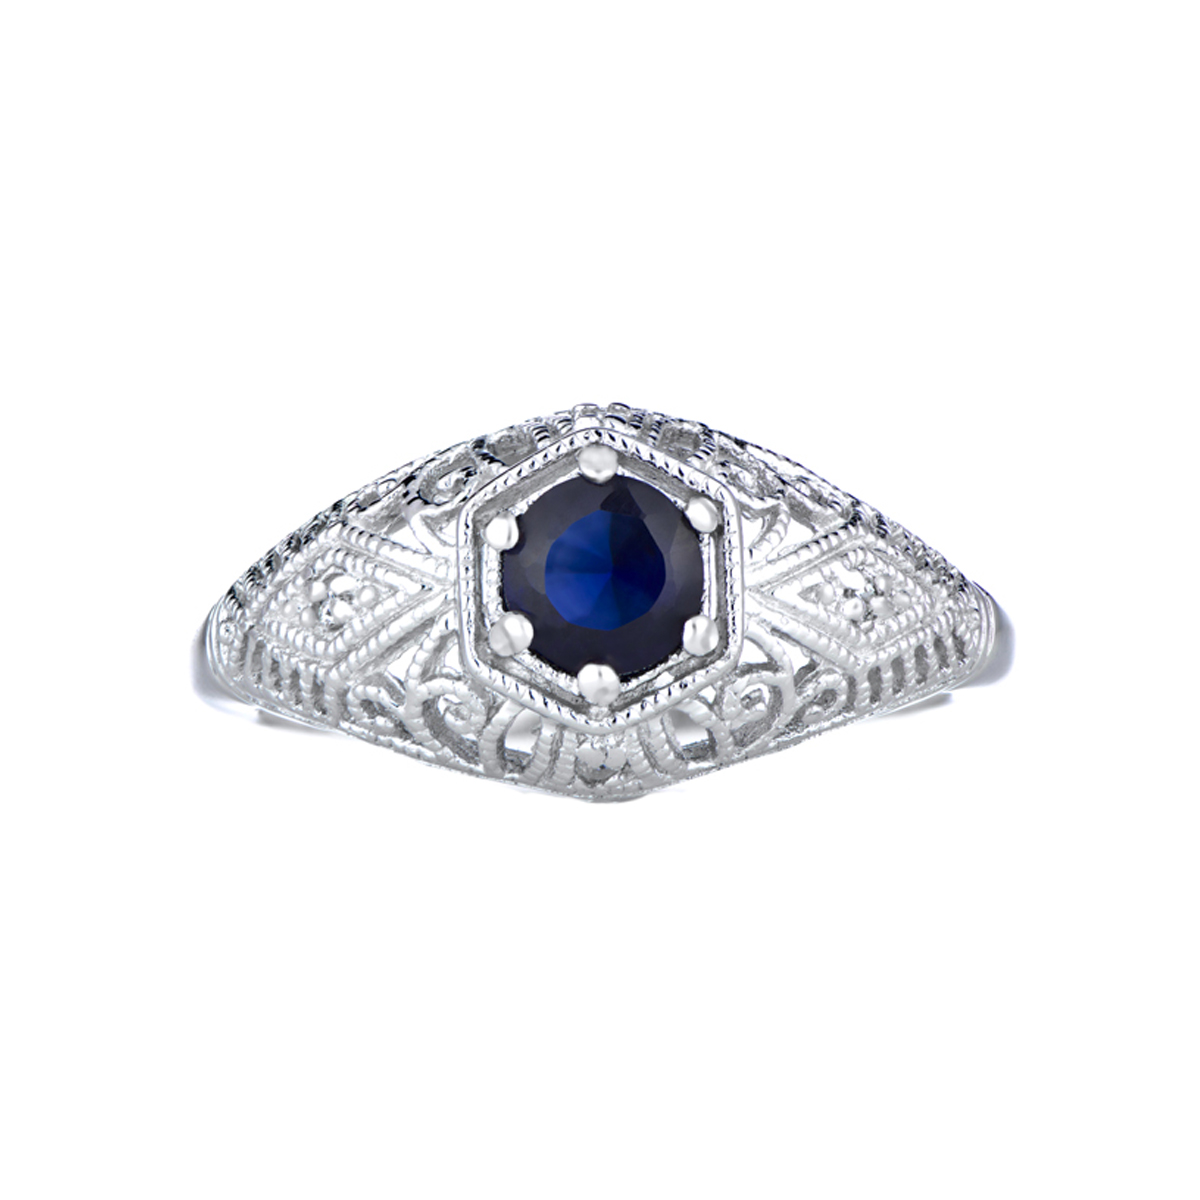 vintage style wedding ring blue cz - Vintage Style Wedding Rings